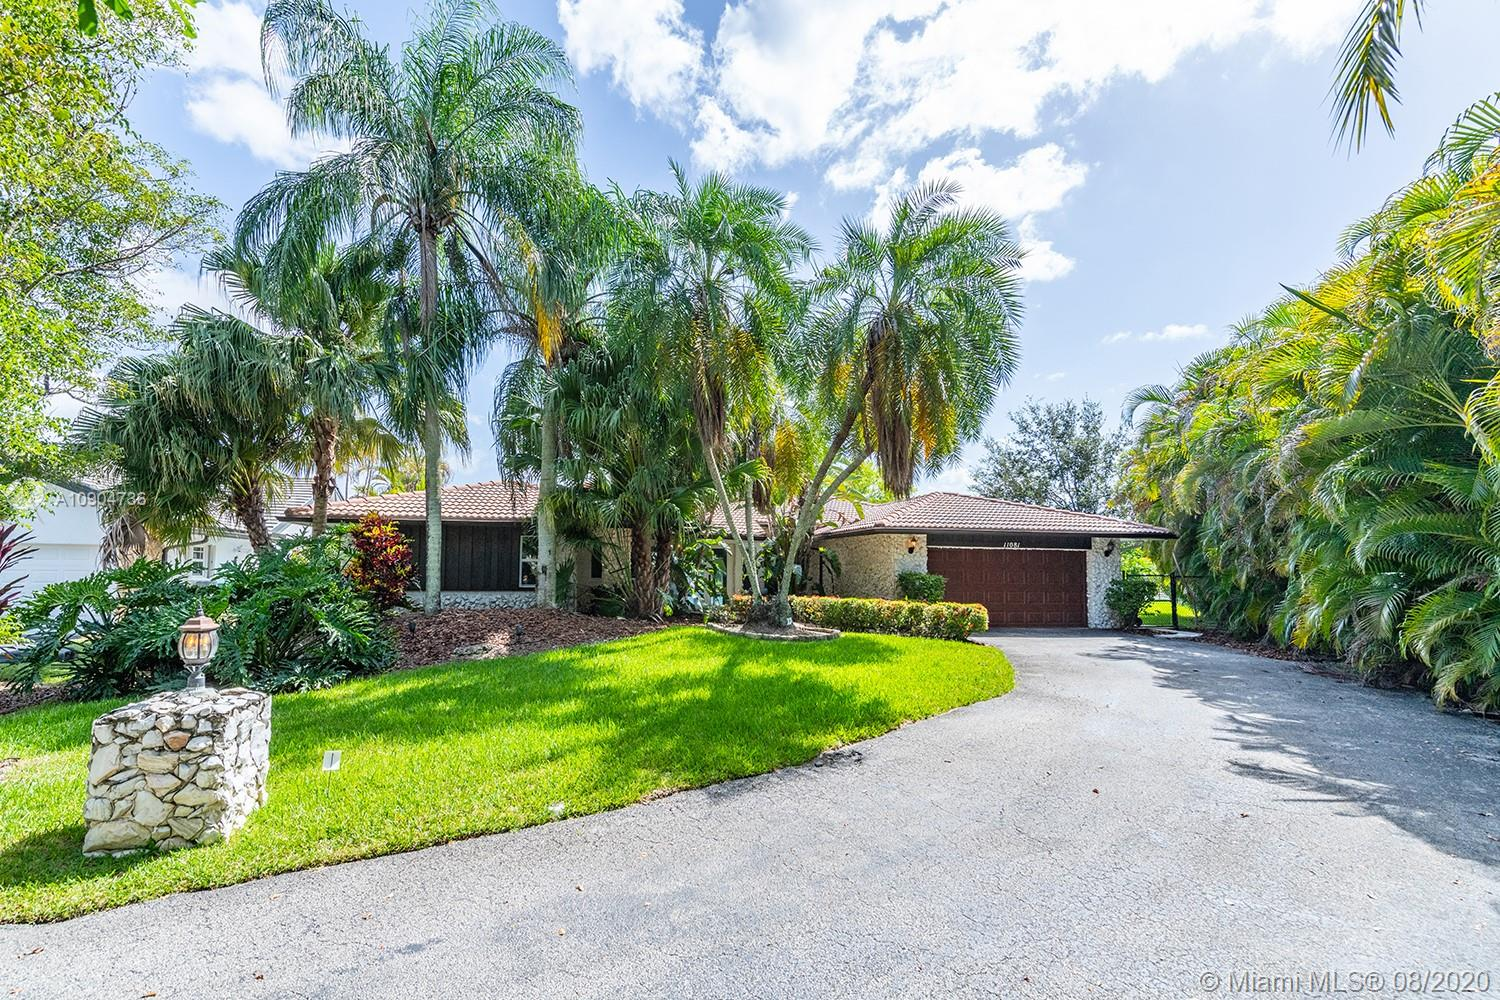 Outstanding 4 bed 2.5 bath house in Coral Springs! This home is spacious, both inside and out, with one of the largest lots in the neighborhood; over a quarter of an acre of land! Upon driving up to this home, you will notice the private, curved driveway leading up to the two car garage.Entering, you are greeted with an open layout and several windows leading to stunning views. This home features a resort style, heated pool overlooking the expansive yard and lake. All windows have been upgraded to thermal, hurricane impact windows so the house is covered for any storm and has an added bonus of being energy efficient. More energy efficient technologies  includes a Nest thermostat system.The kitchen comes complete with a gas range stove and a double oven. No HOA. Easy access to Expresswy